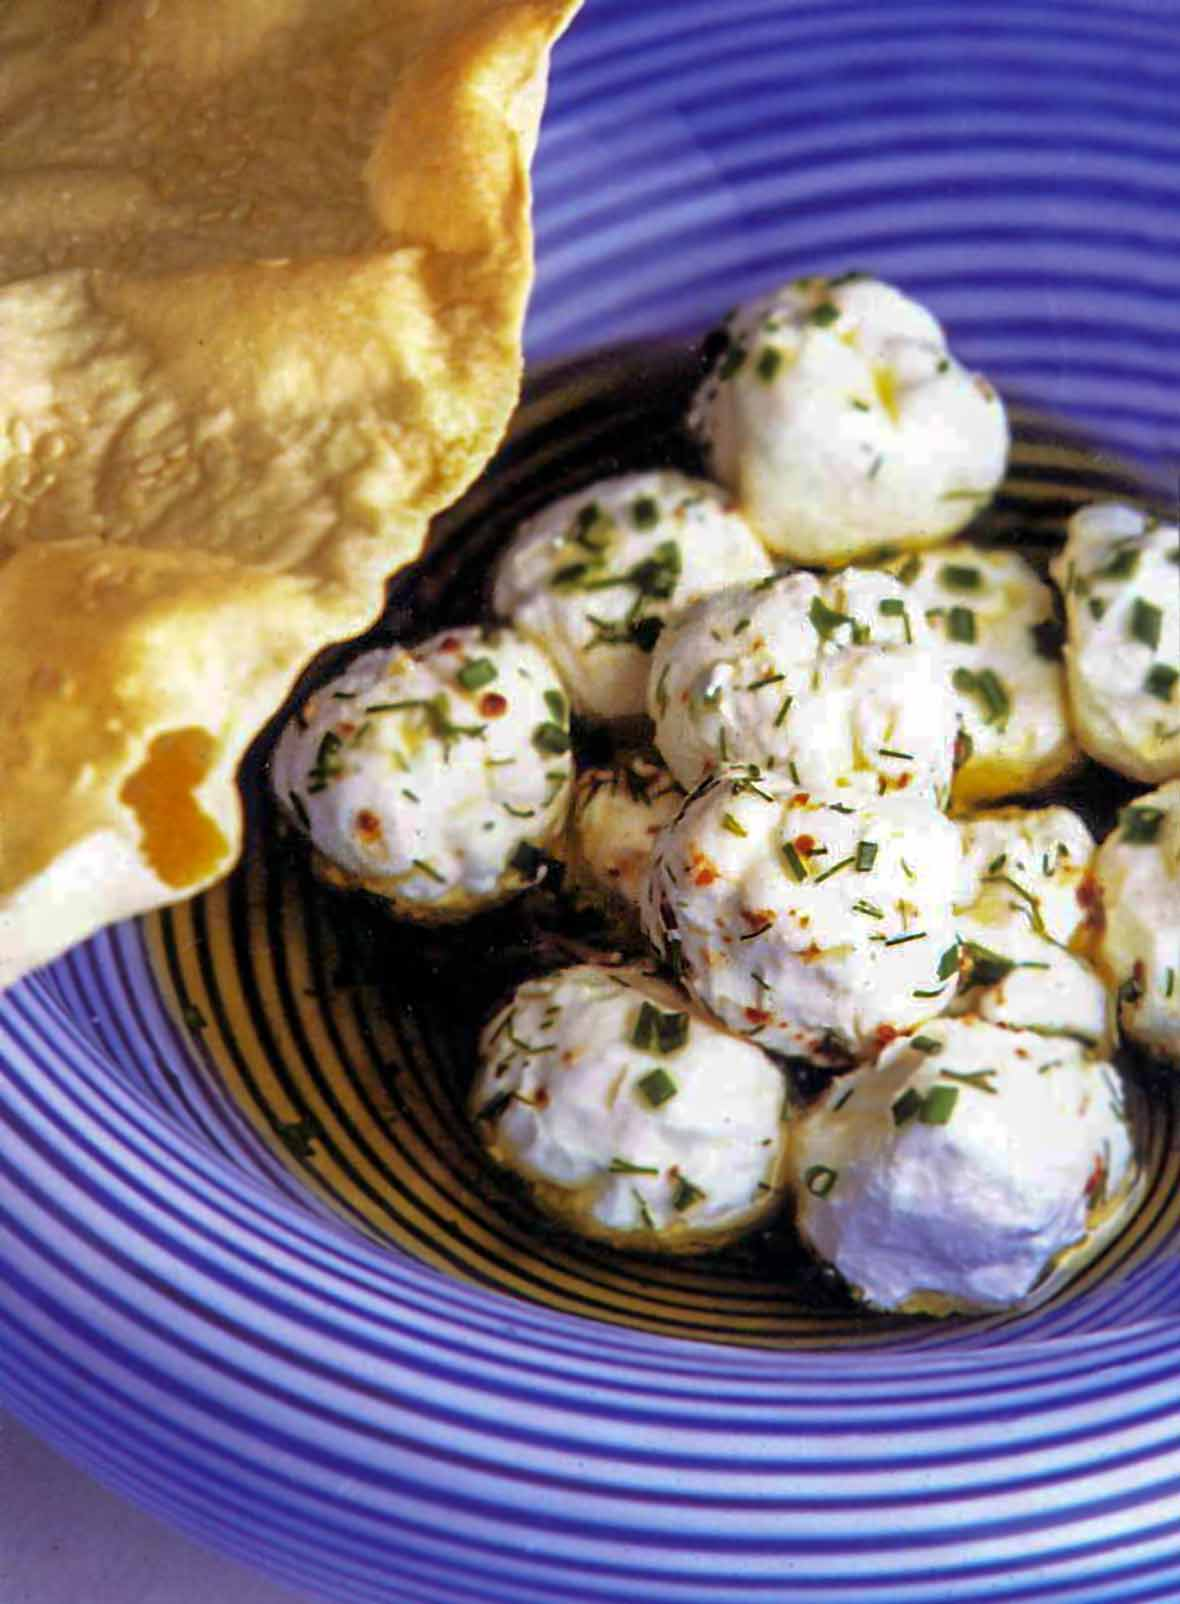 Yogurt cheese balls tossed with garlic dill oil and aleppo pepper in a bowl